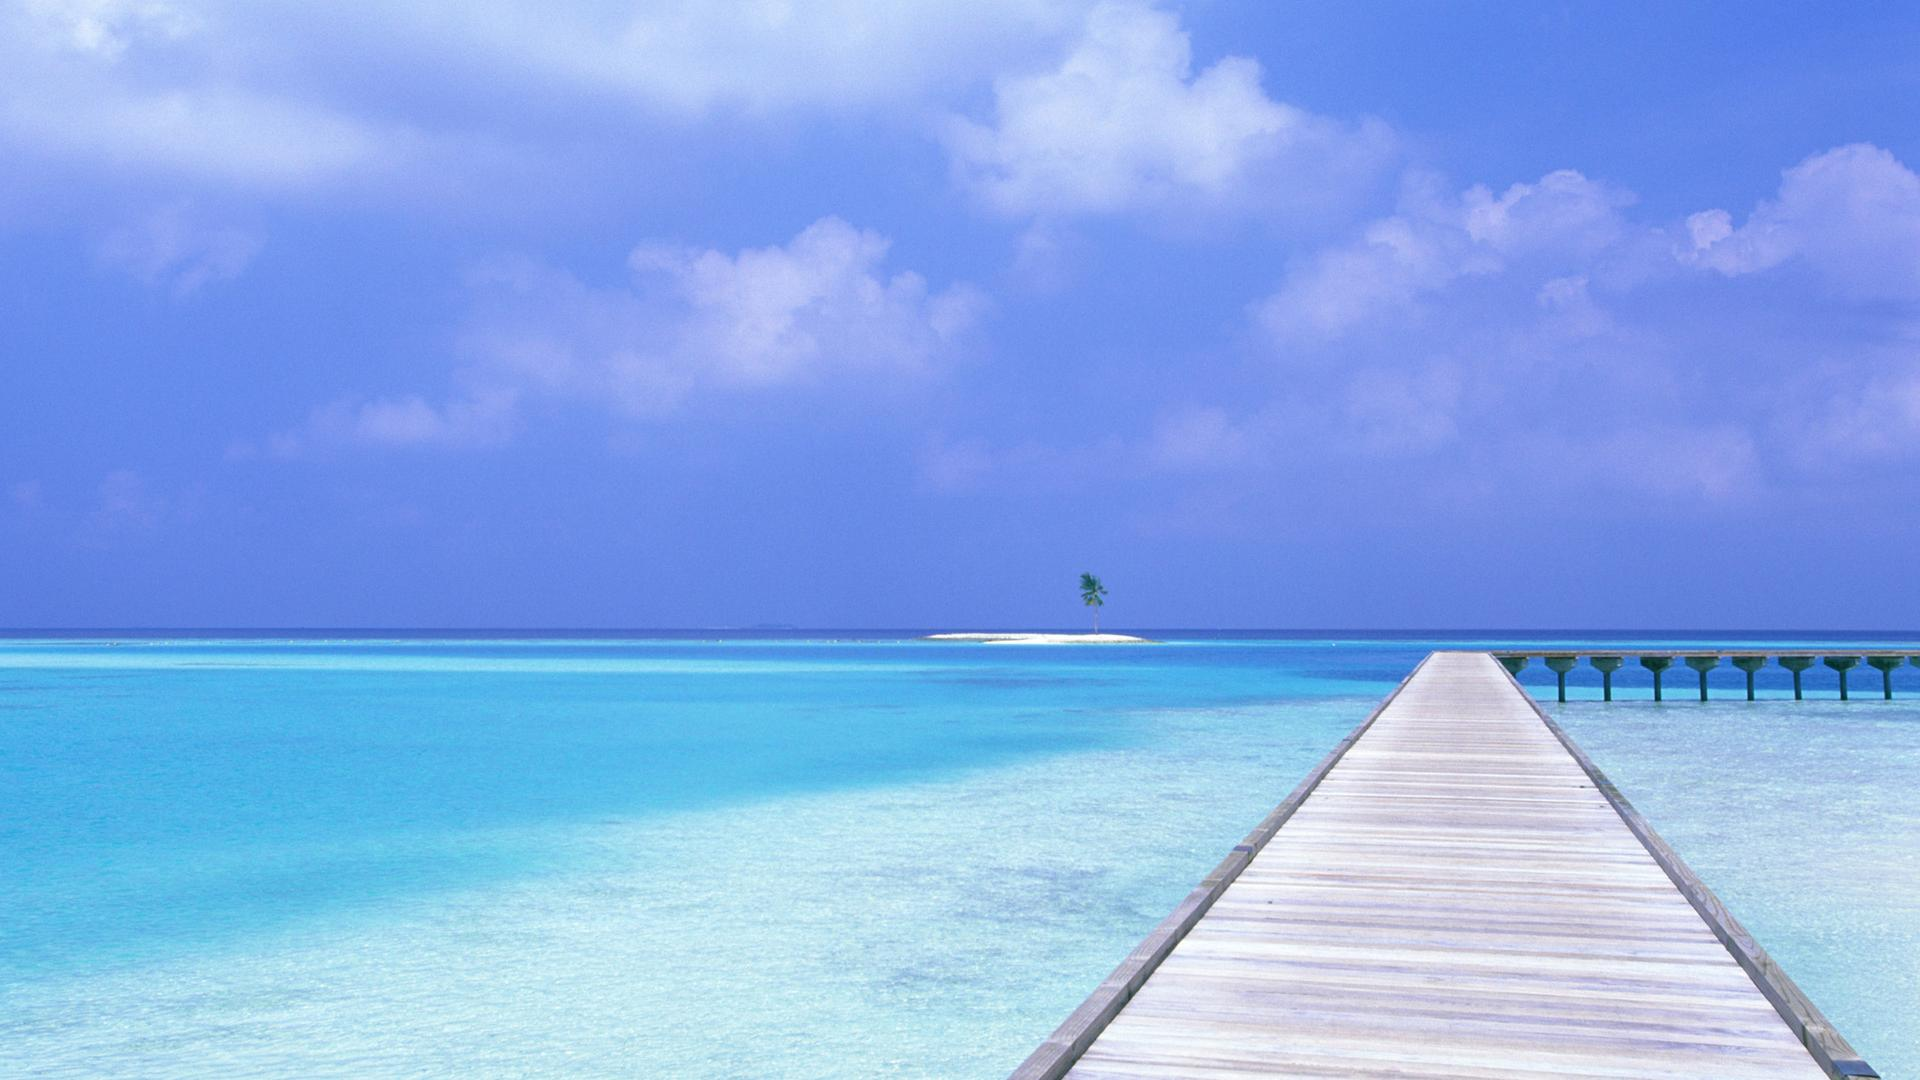 maldives beach wallpaper 2jpg 1920x1080